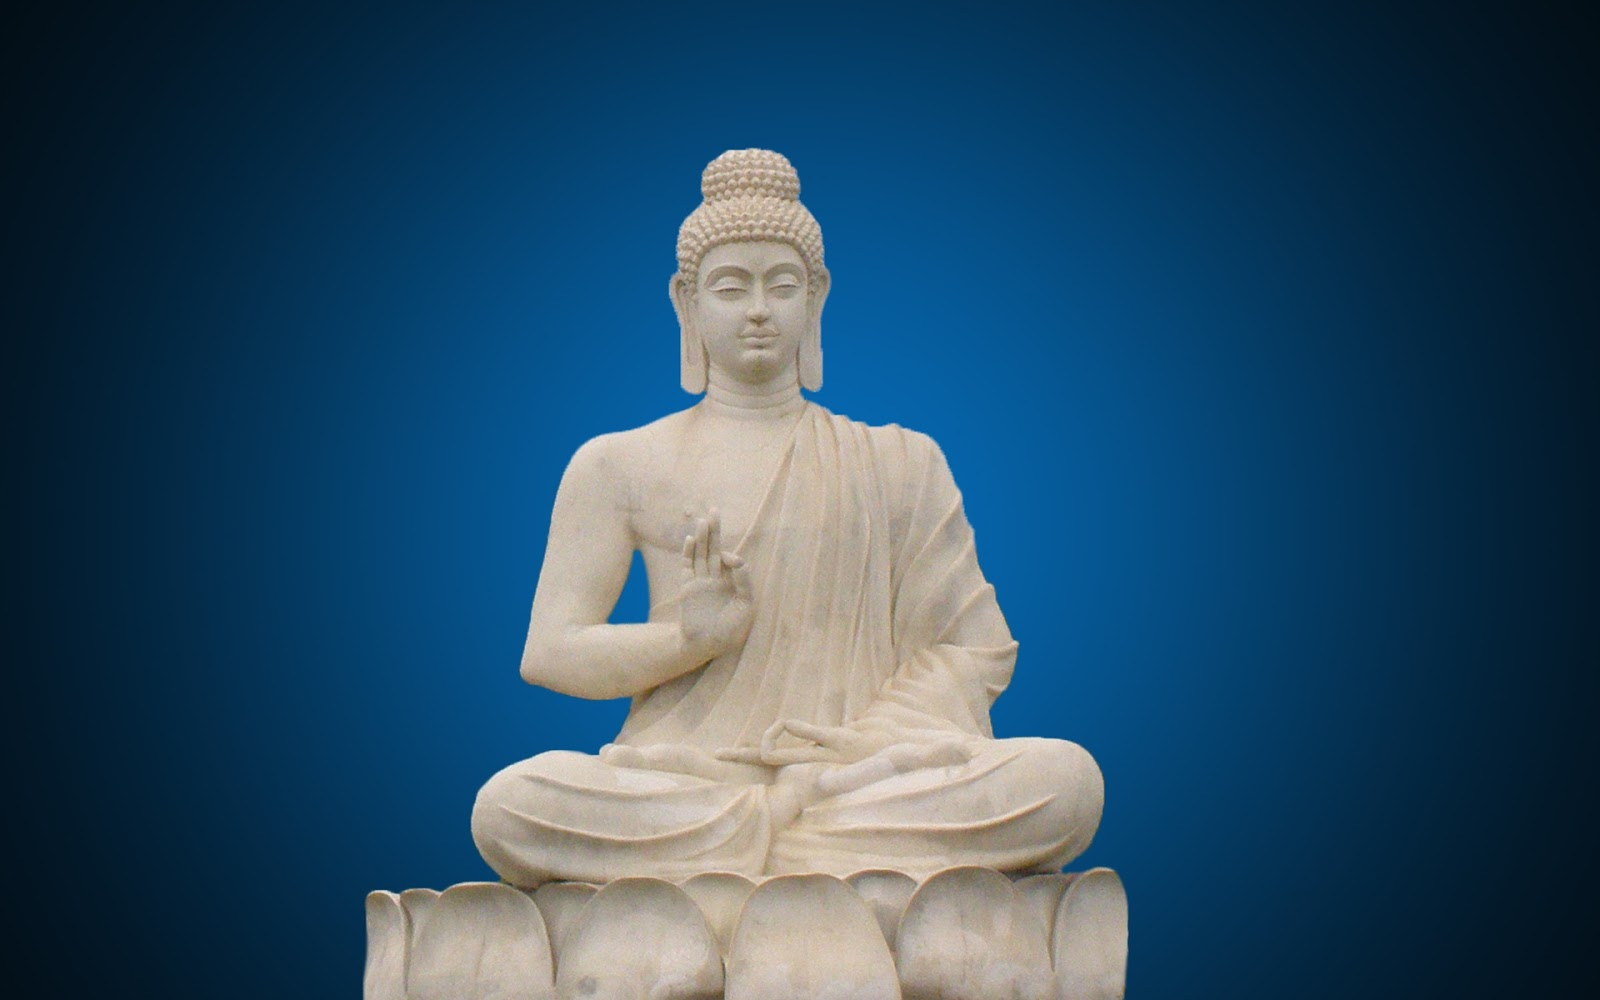 07 Best Lord Buddha HD Wallpapers Free Download 2018